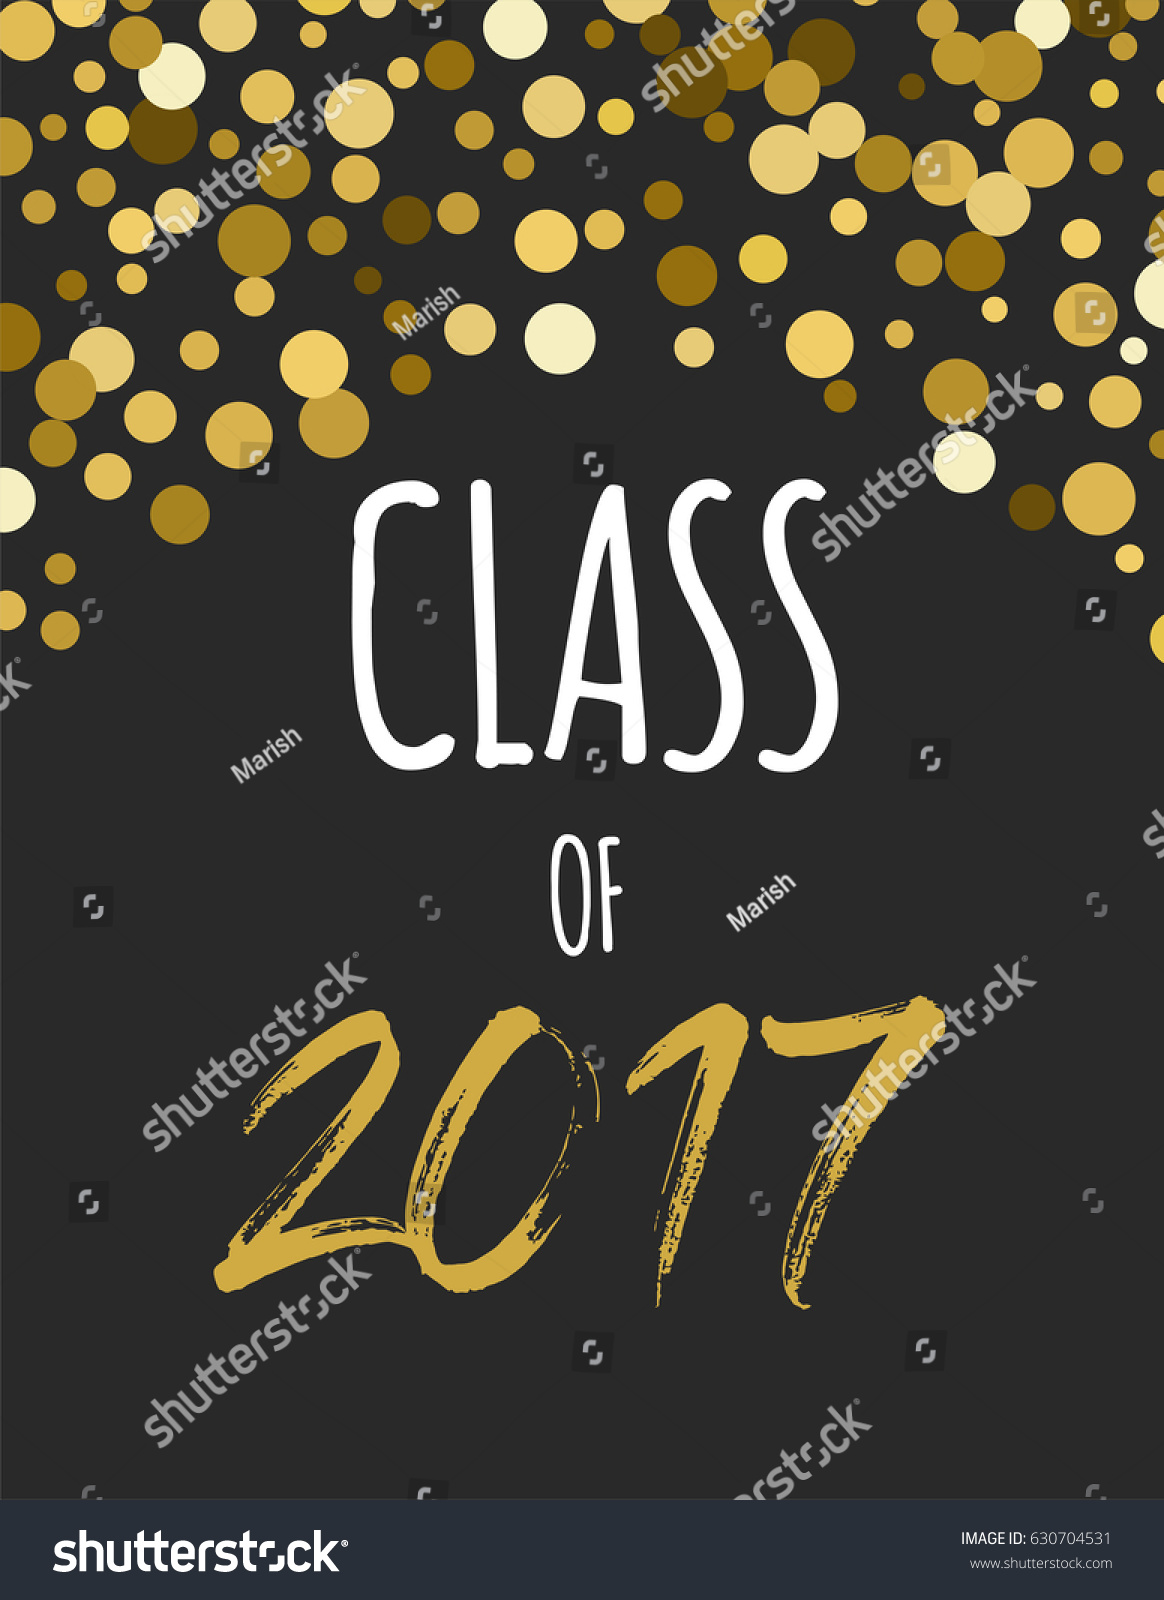 Graduation Class 2017 Party Invitations Posters Stock Vector ...